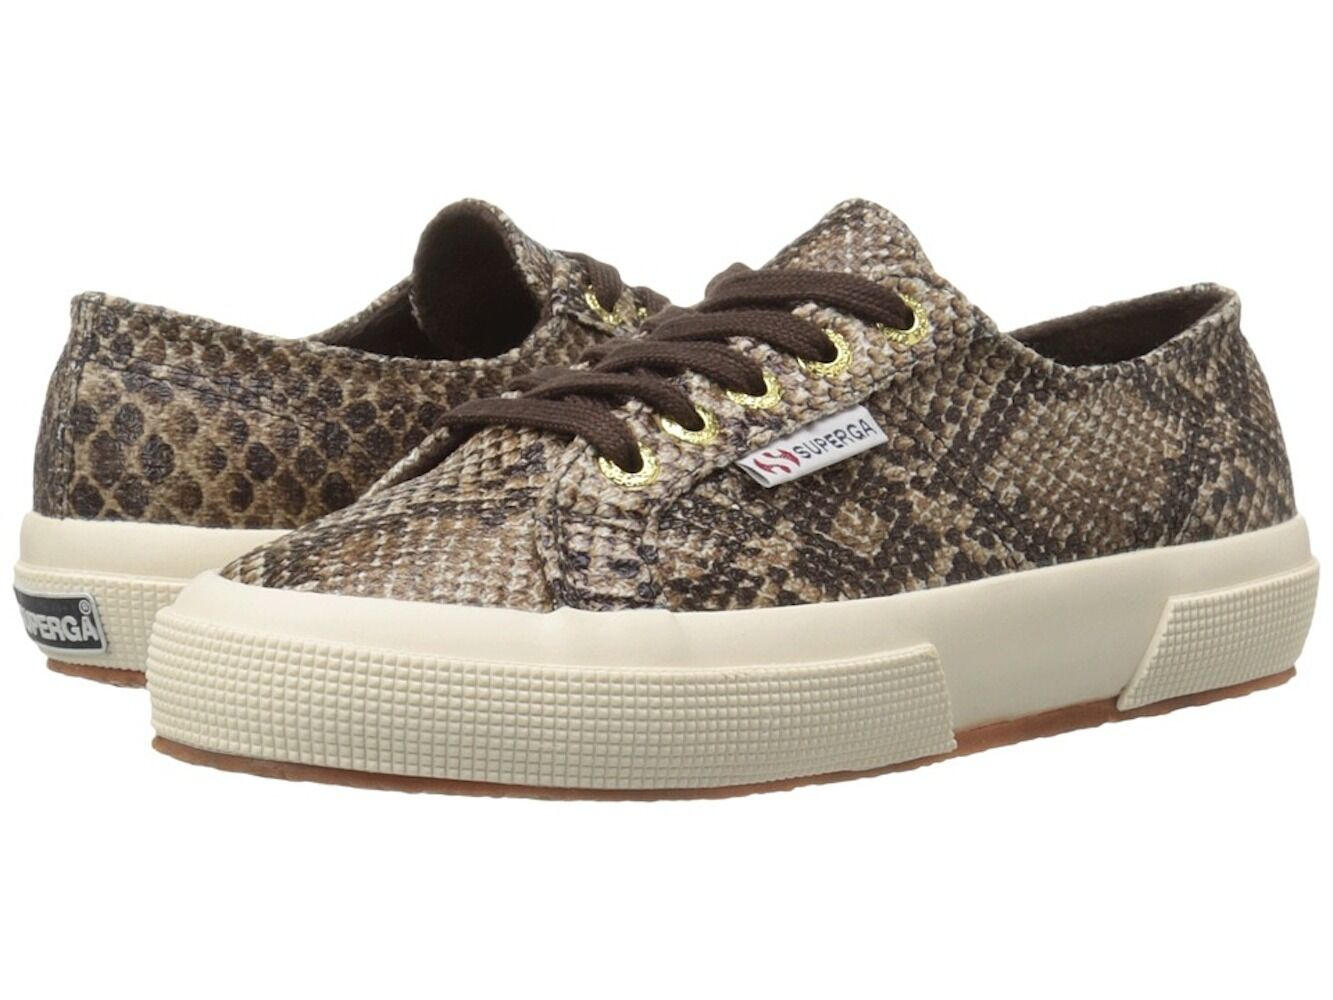 Superga 2750 Brown Cot Snake Print Lace Up Sneaker shoes Sz 7 NWT S0080CD